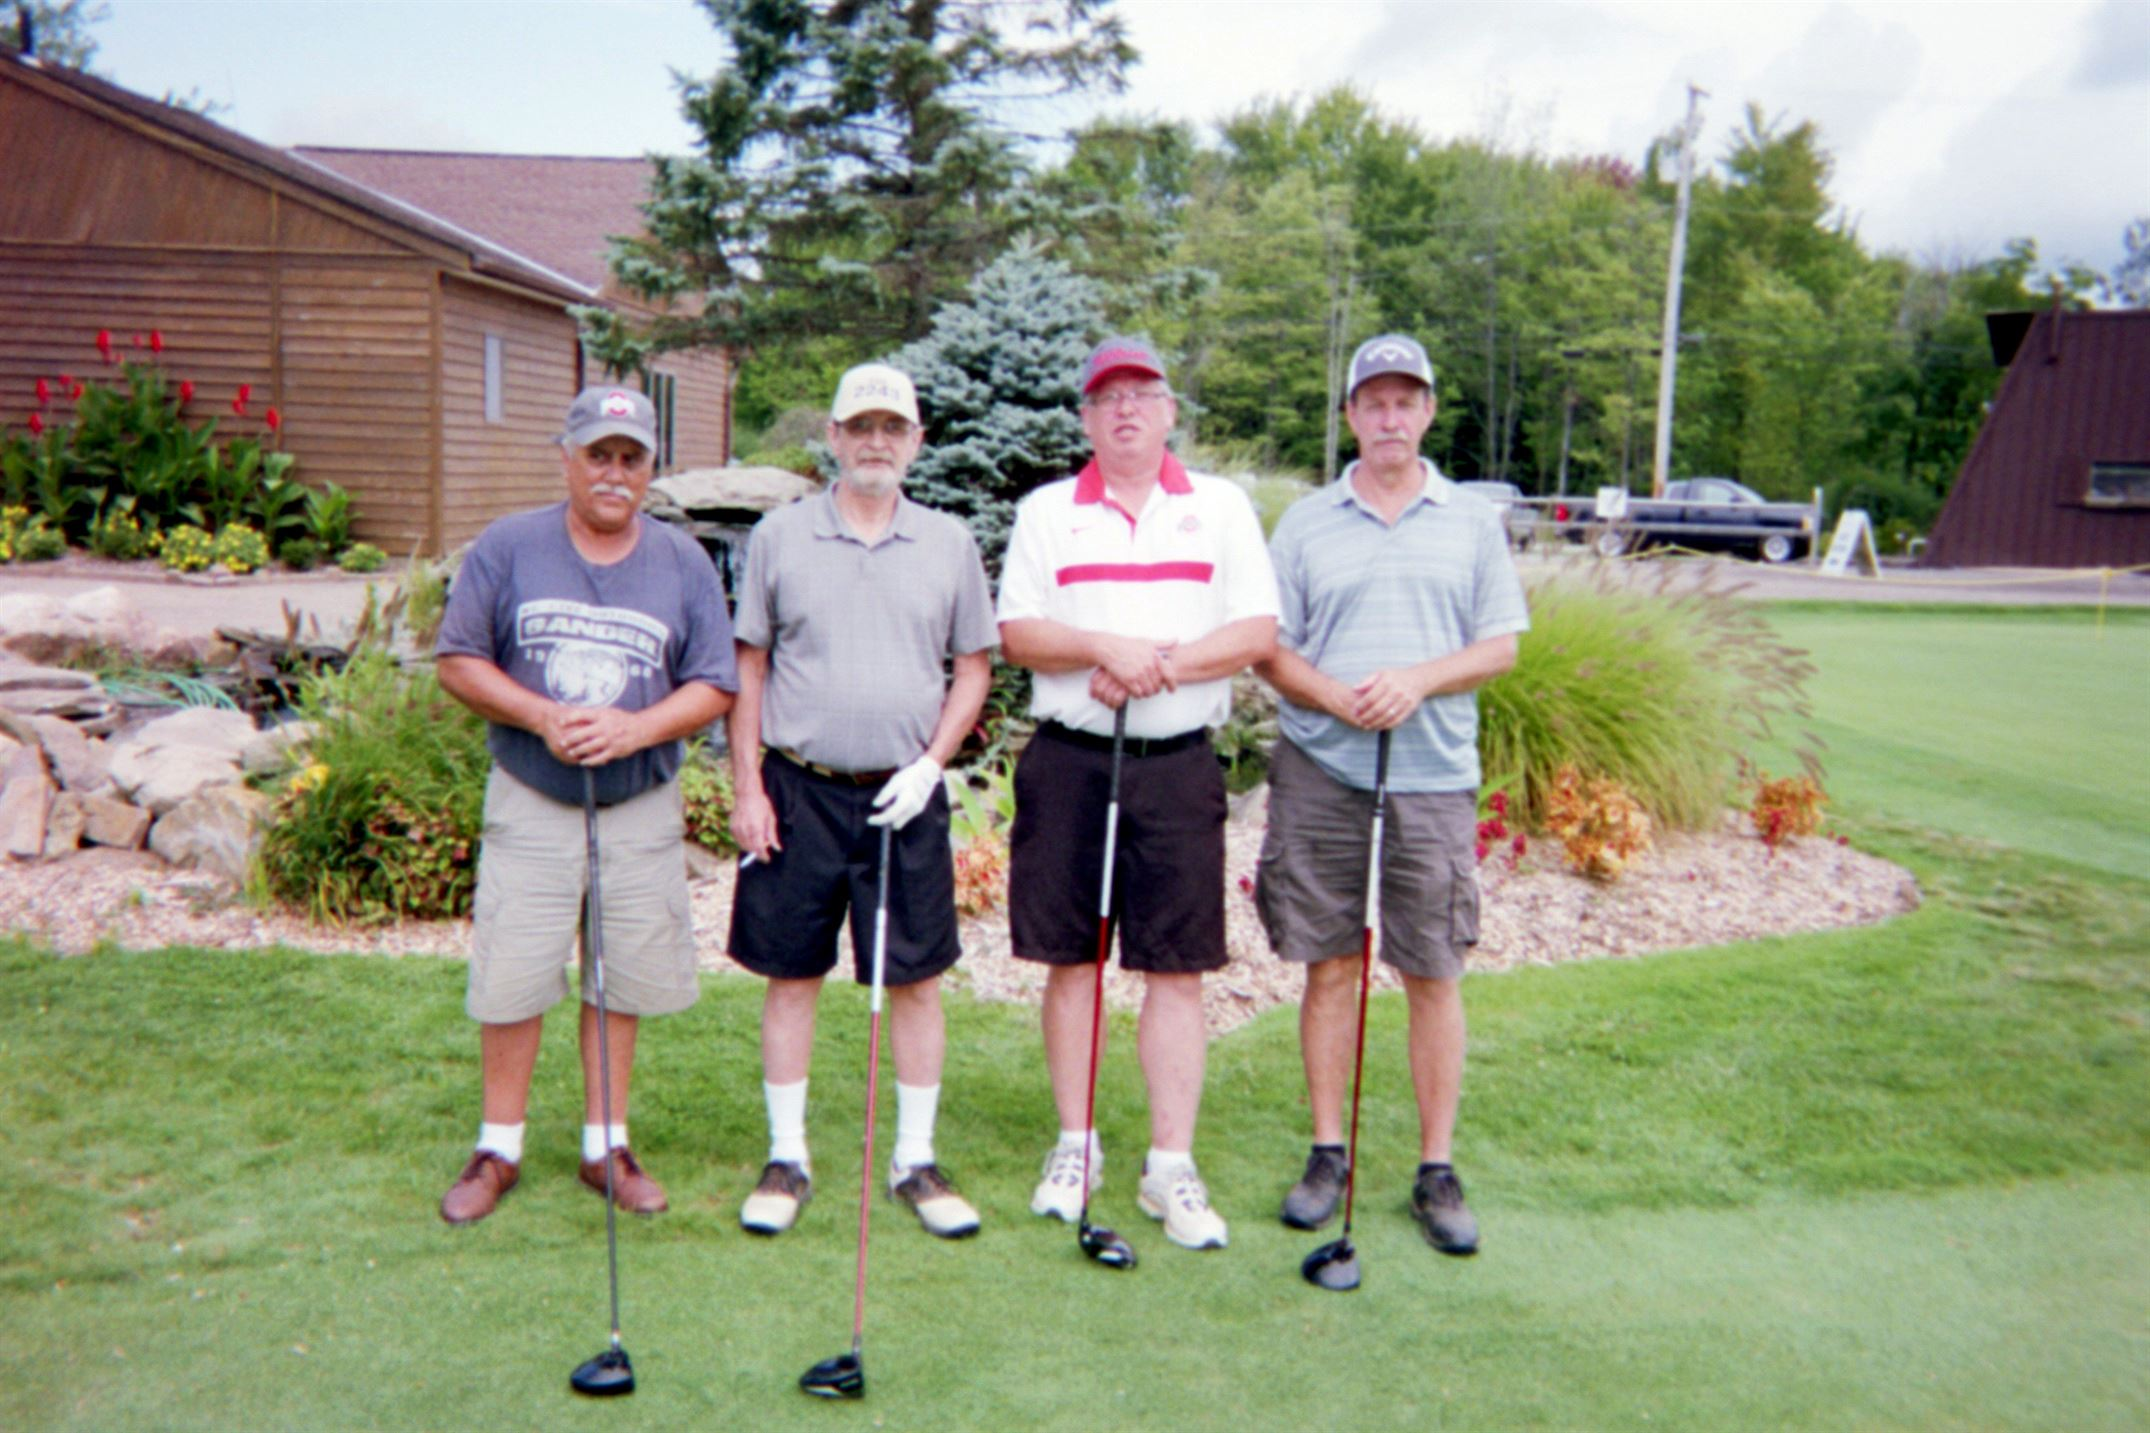 Brent Williamson, Dick Goff, Doug Bright, Randy Goff